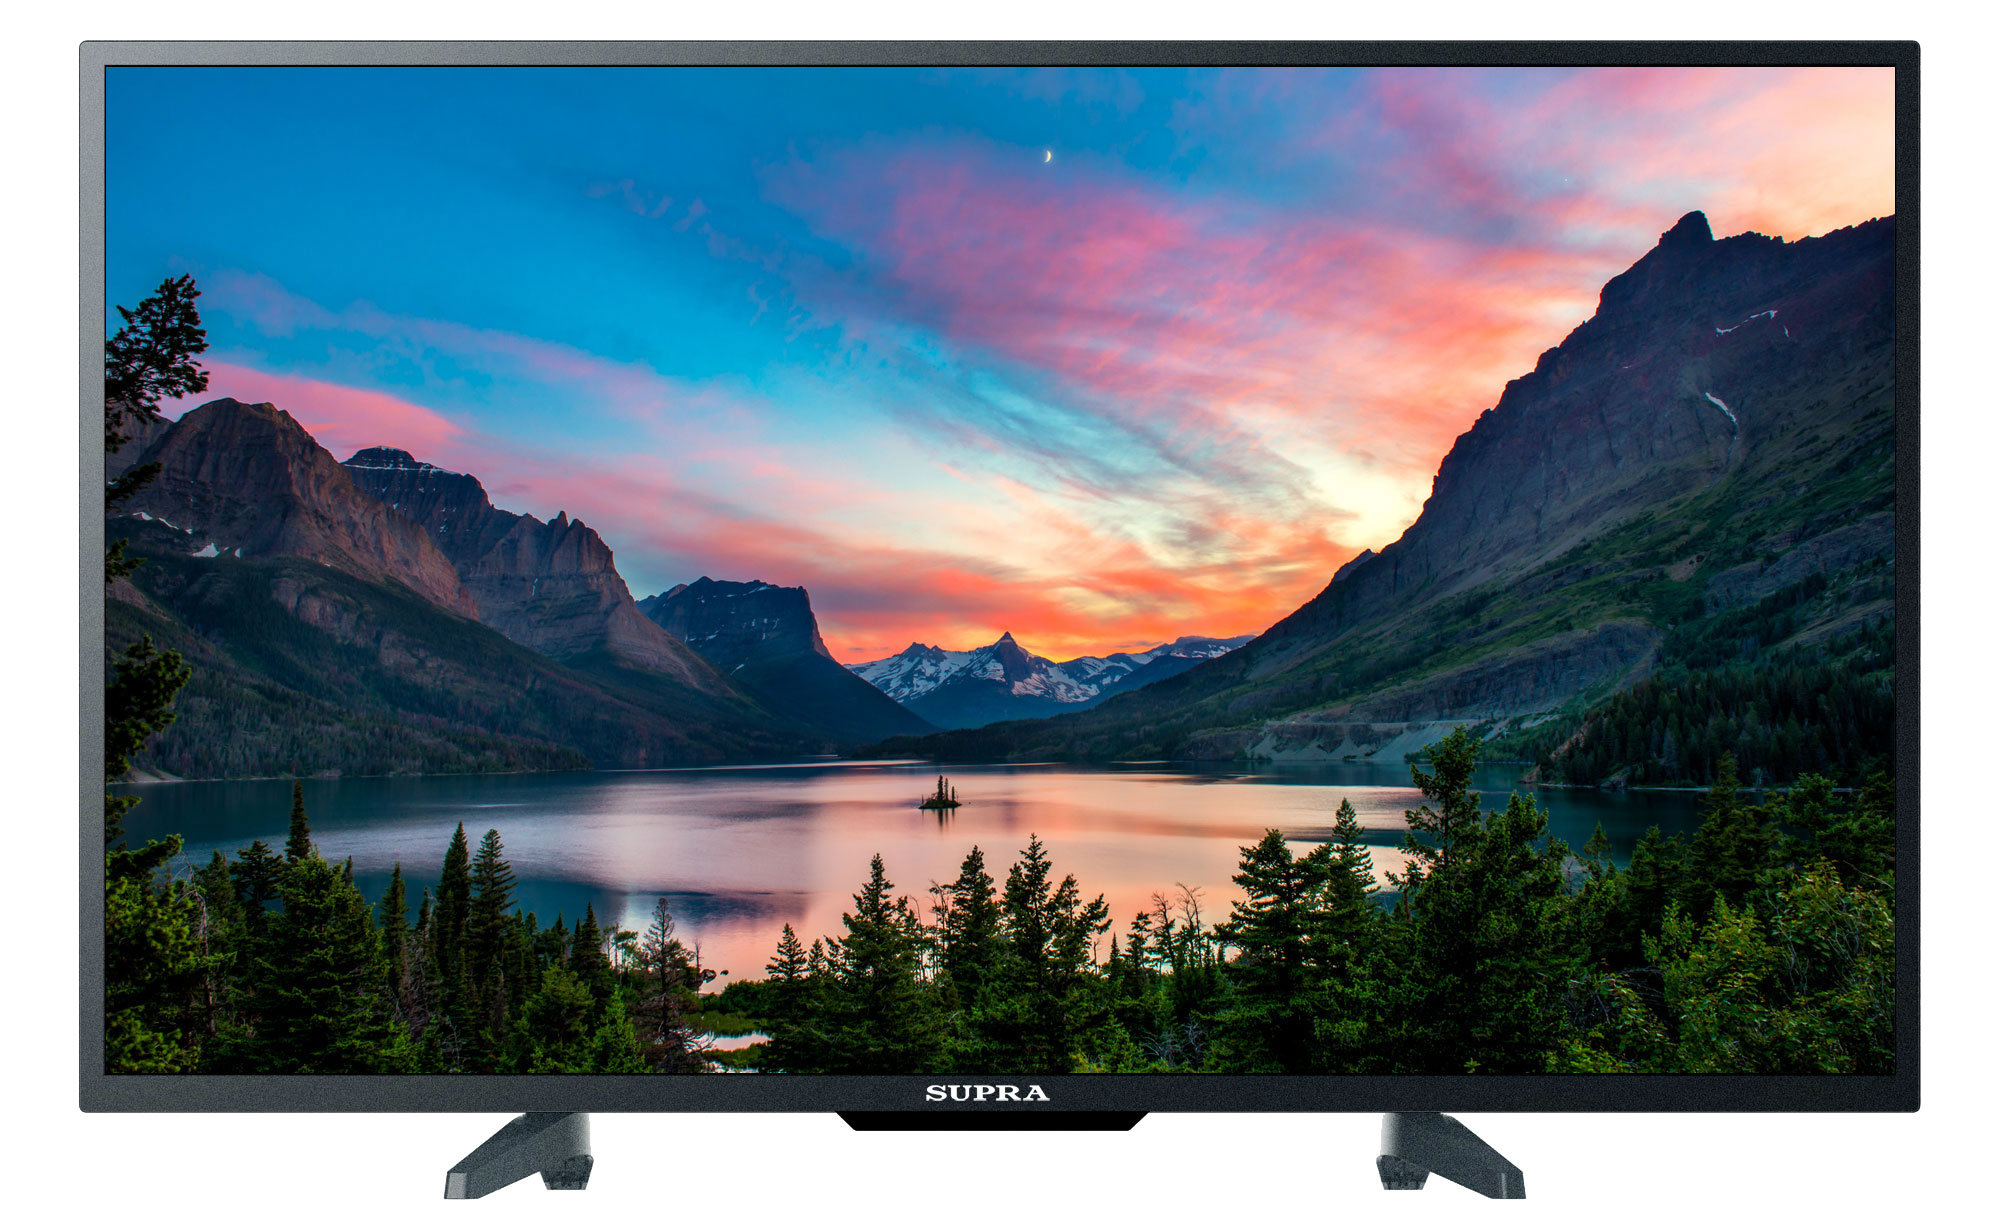 Телевизор Supra STV-LC40LT0012F LED 40' Black, 16:9, 1920x1080, 120000:1, 280 кд/м2, USB, VGA, HDMI, AV, USB, DVB-T, T2, C t vst59 03 lcd led controller driver board for ltn154u2 l05 ltn154u1 l01 tv hdmi vga cvbs usb lvds reuse laptop 1920x1200